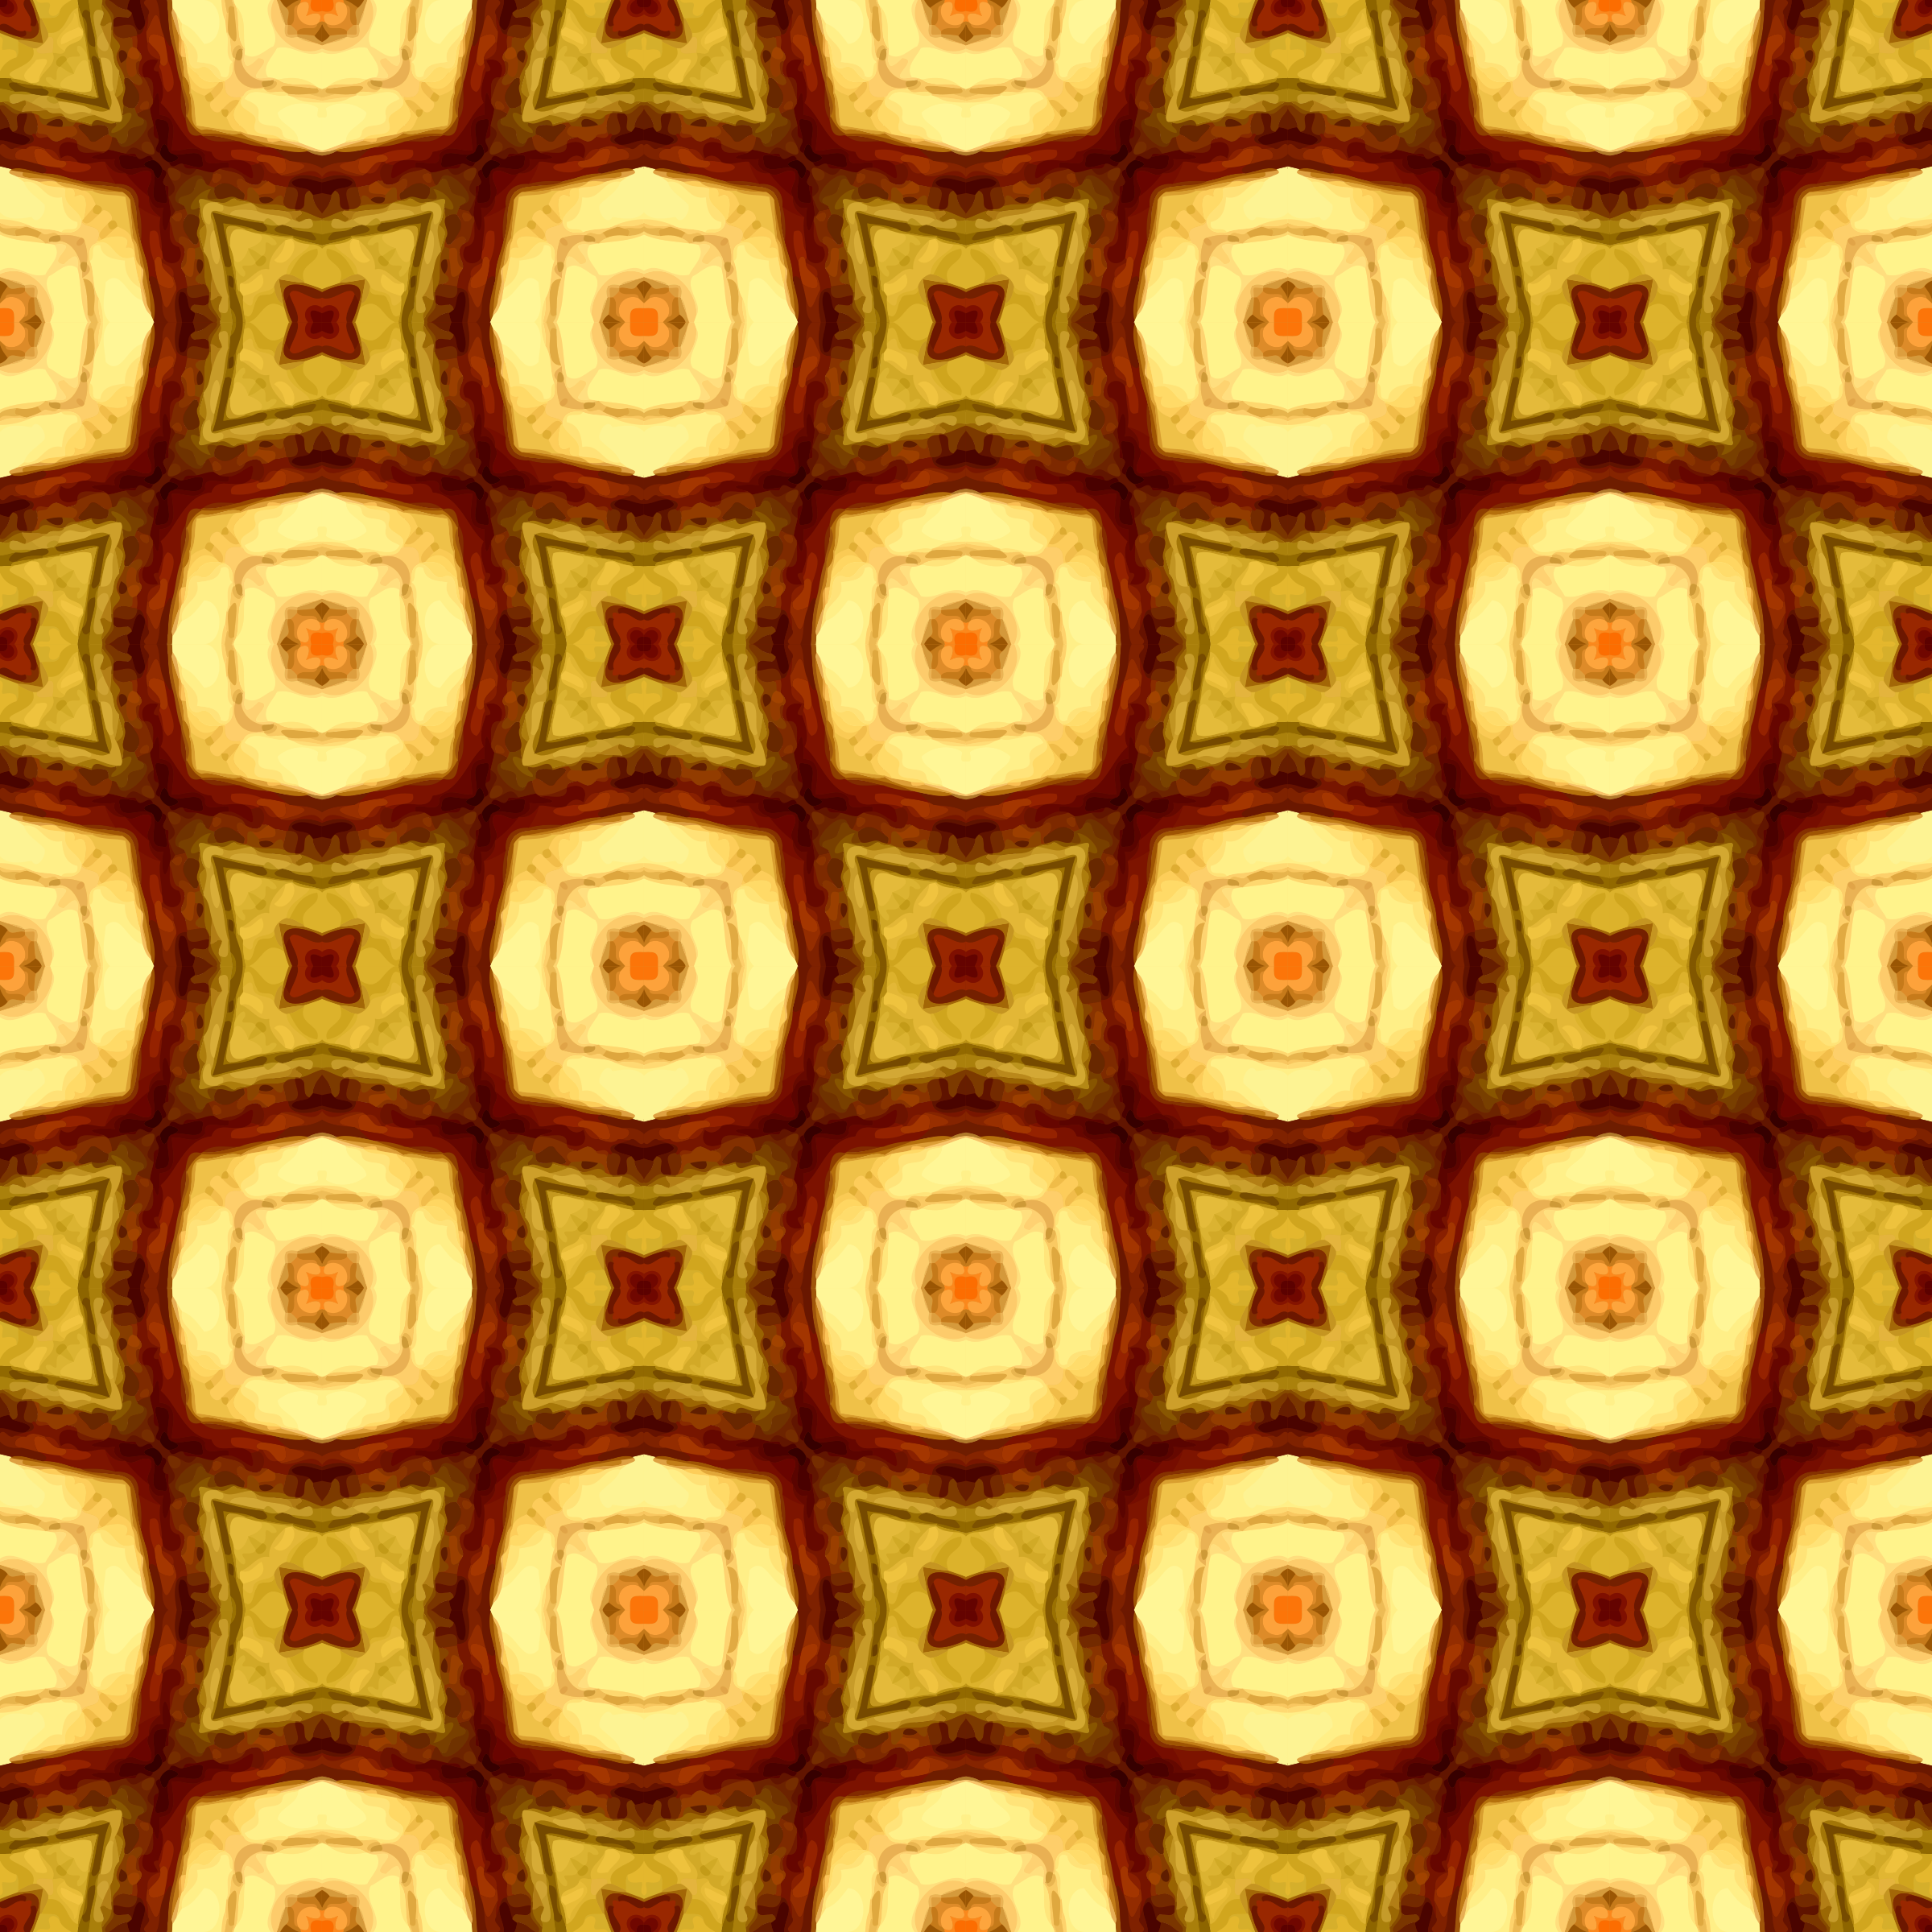 Background pattern 158 by Firkin